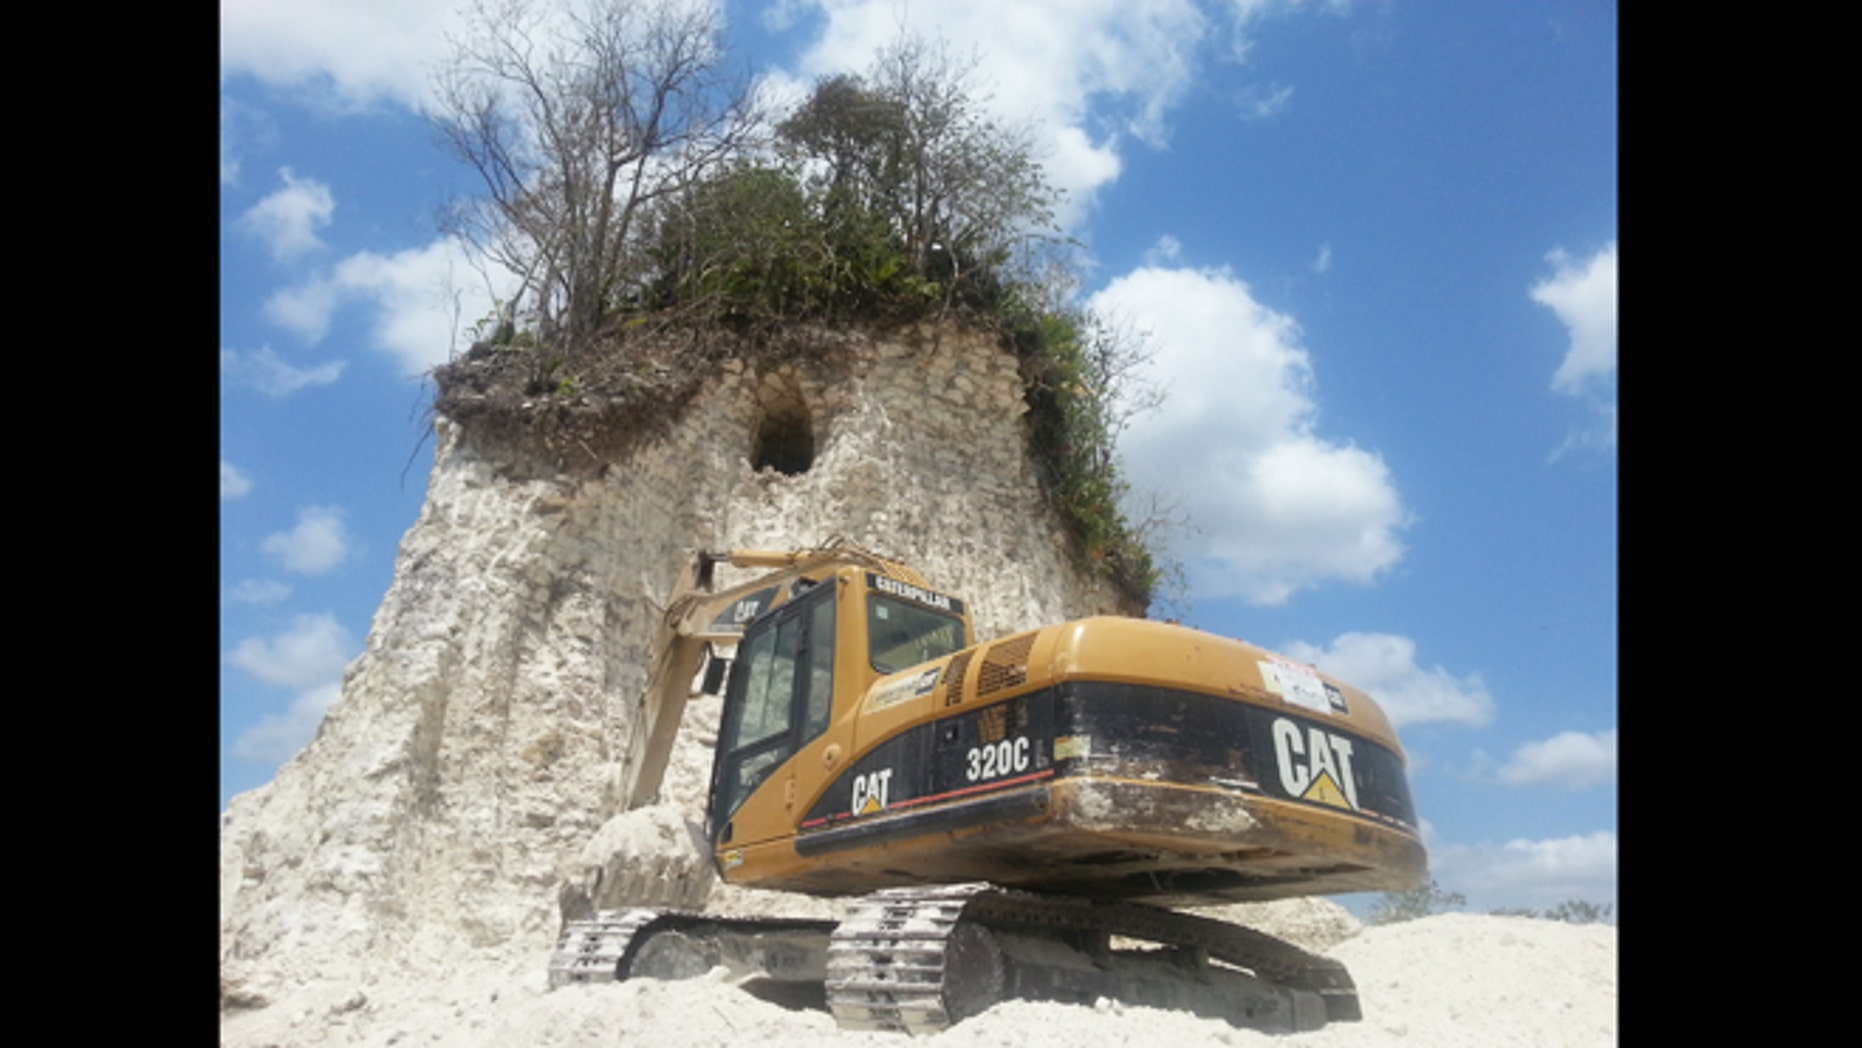 """Heavy construction equipment sits dormant at the remains of a partially destroyed Mayan temple, part of the 3,200 year old site known as Noh Mul or """"Big Hill."""""""